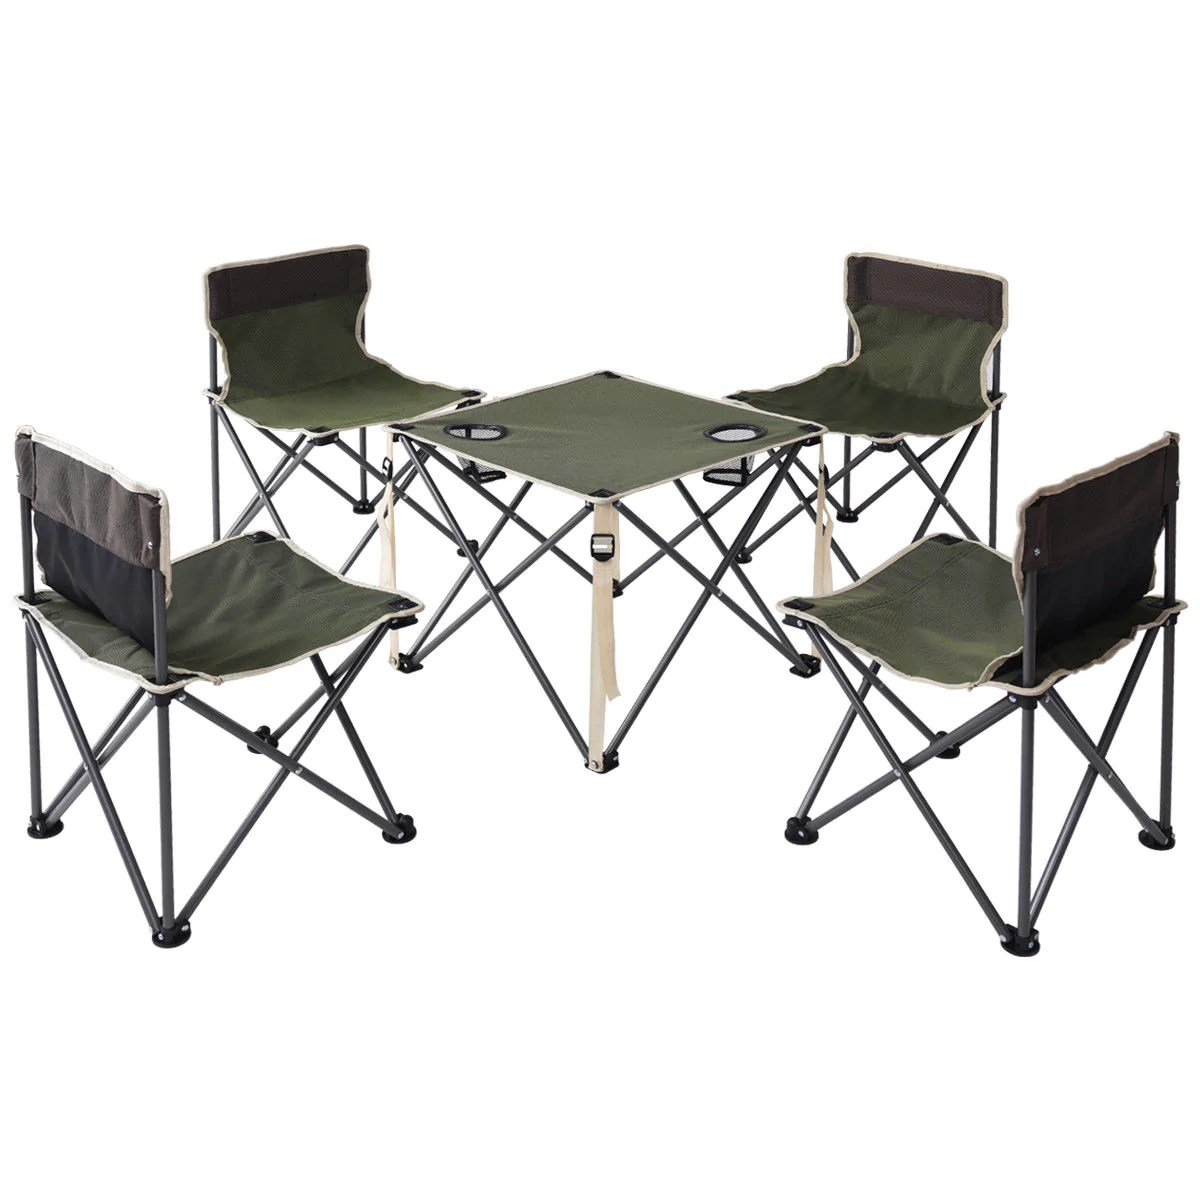 folding chair picnic table manufacturing process natural elements by l green portable outdoor chairs set camping beach with carrying bag